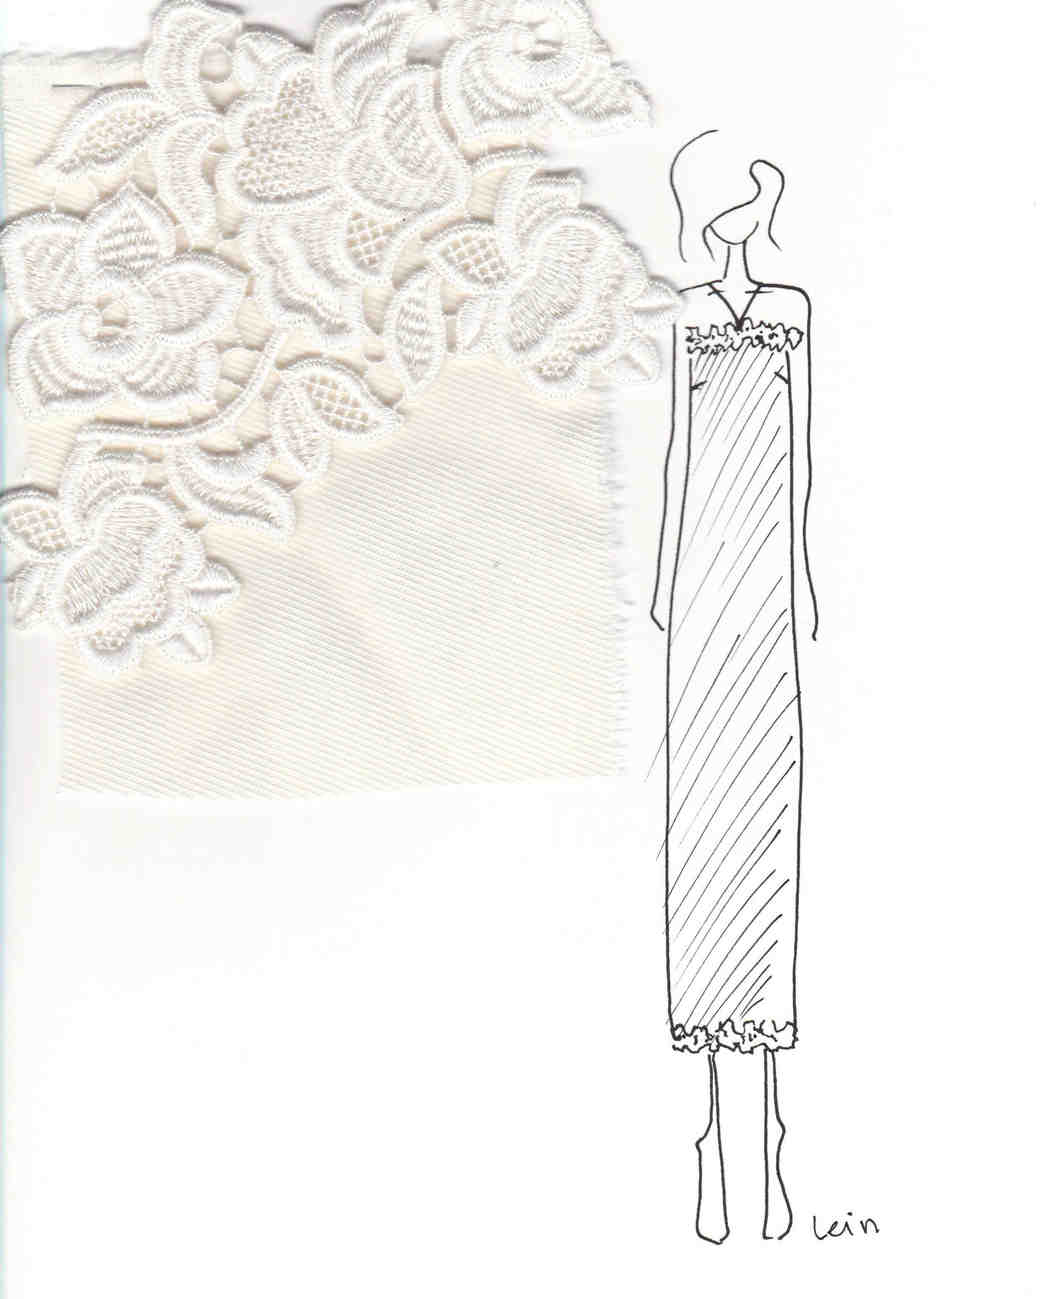 lein wedding dress sketch